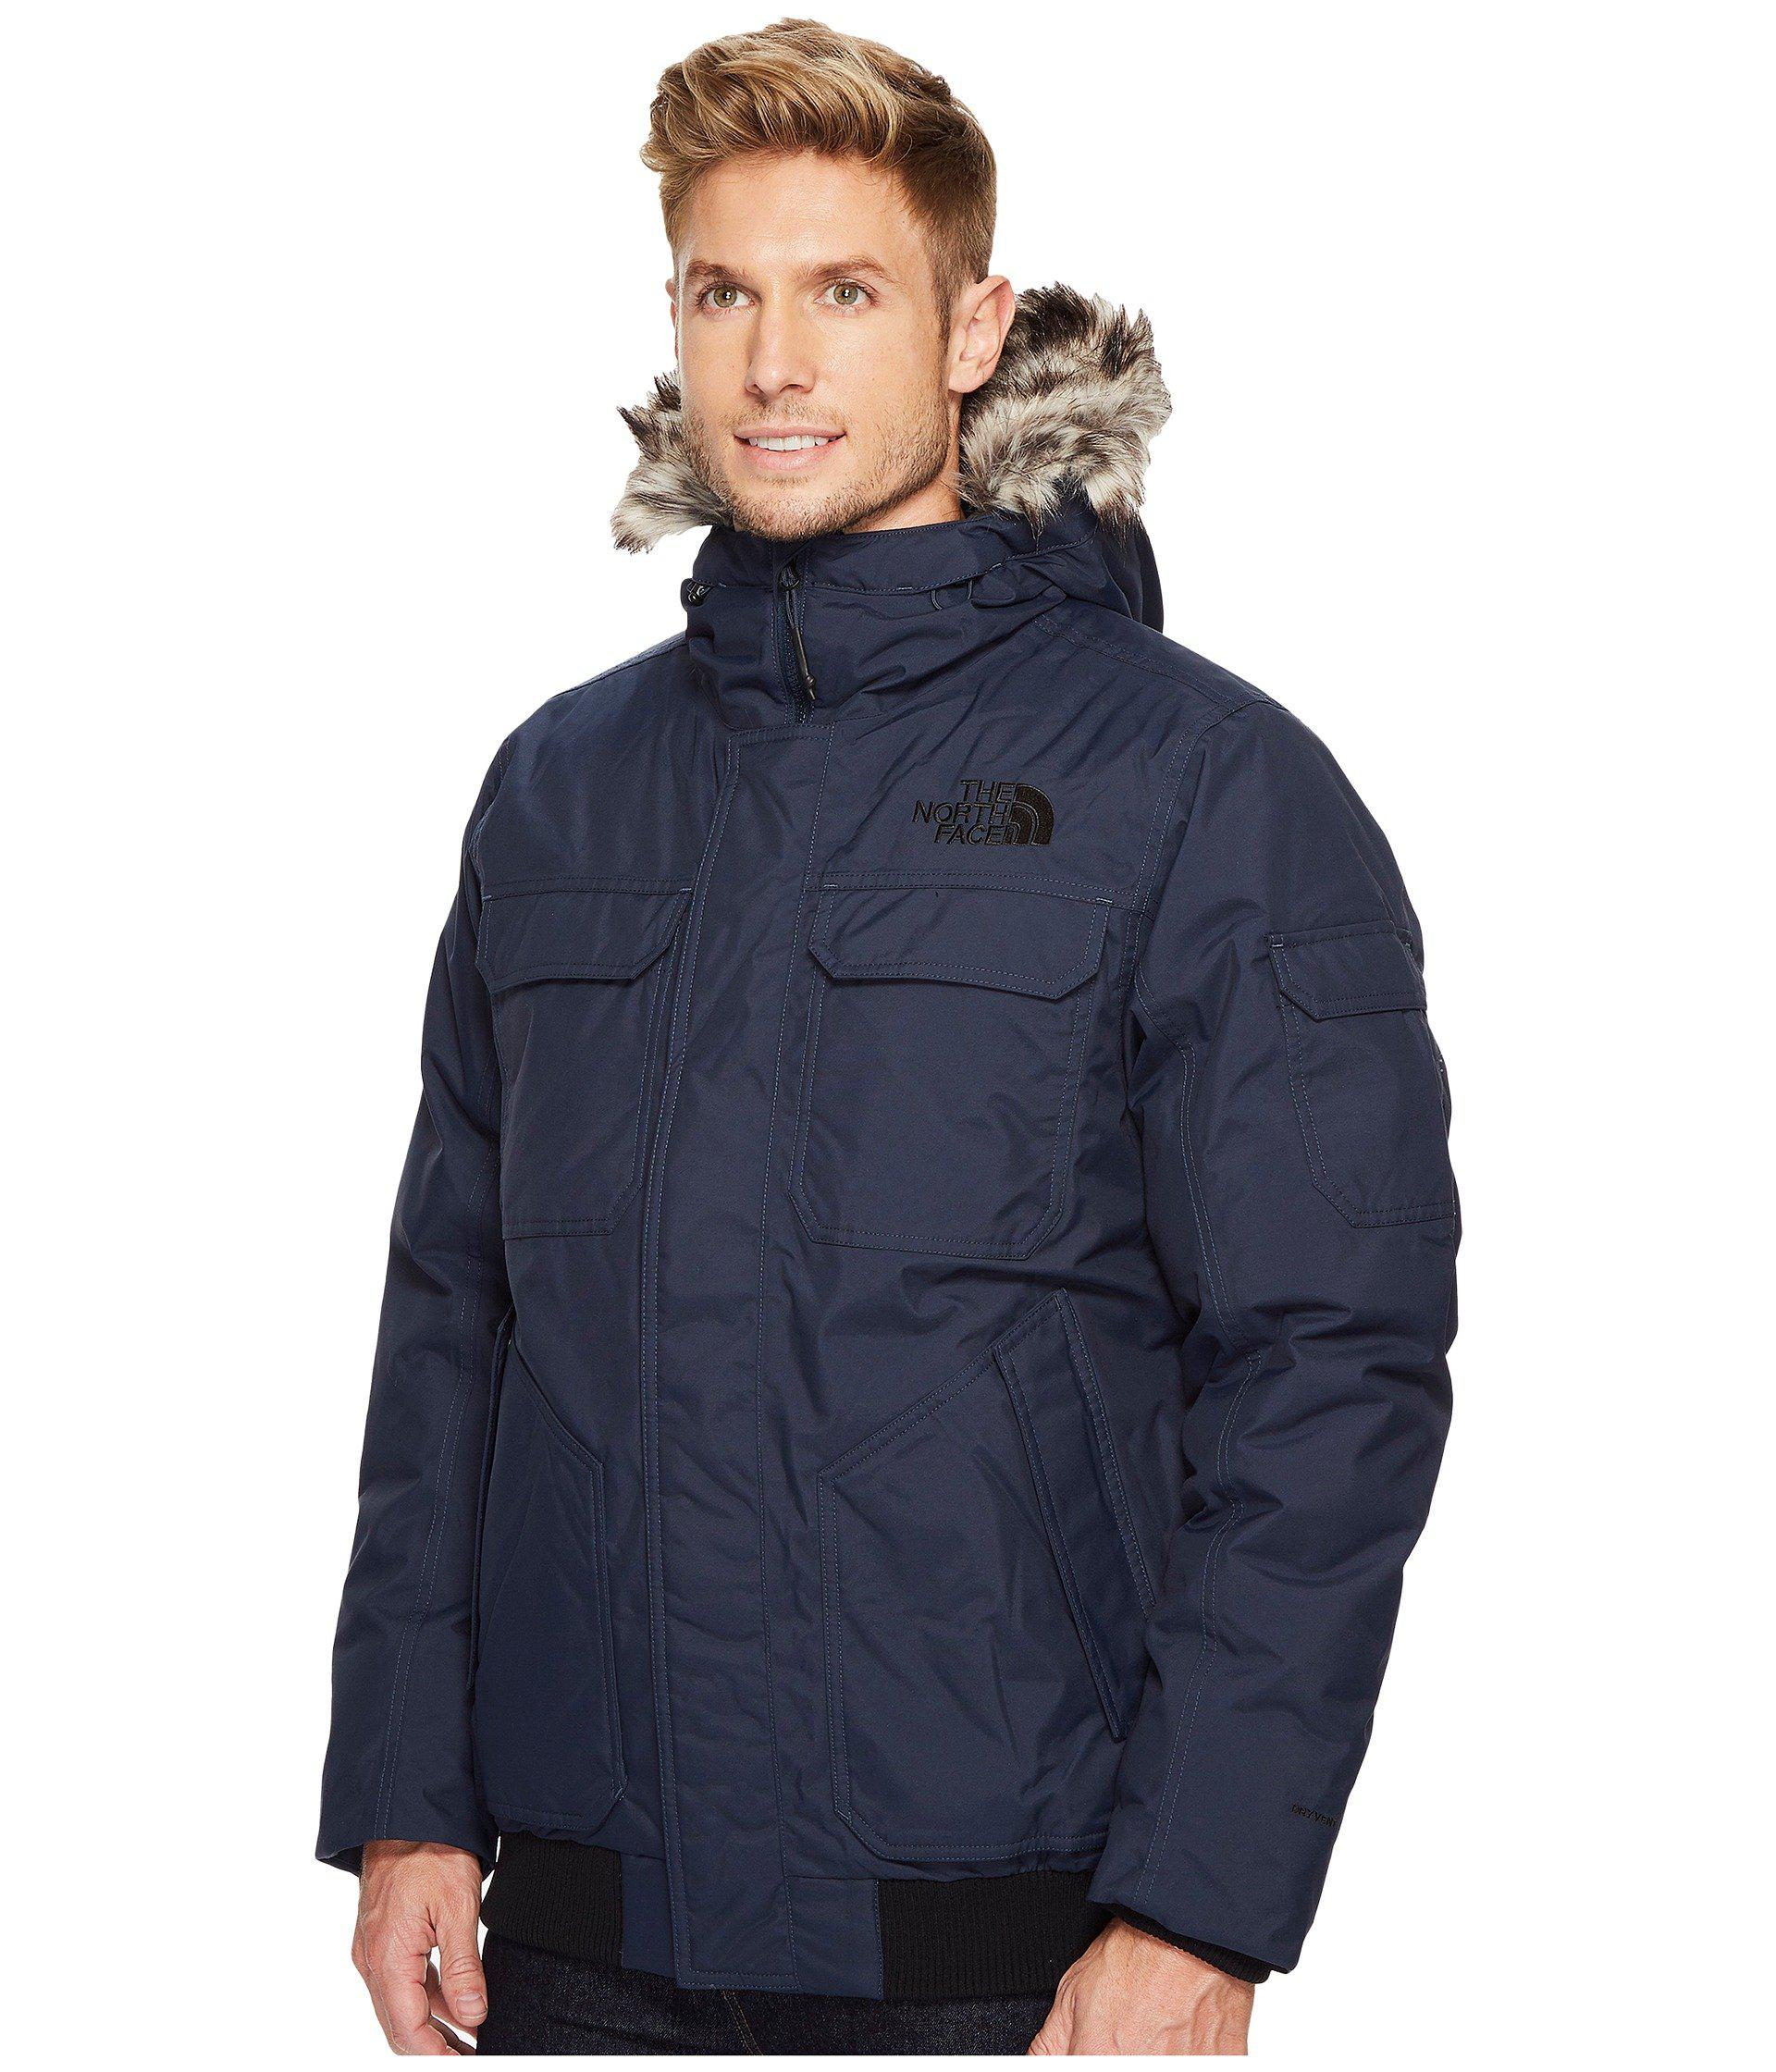 1caf9e59 the-north-face-Urban-Navy-Gotham-Jacket-Iii -tumbleweed-Greennew-Taupe-Green-Macrofleck-Print-Mens-Coat.jpeg